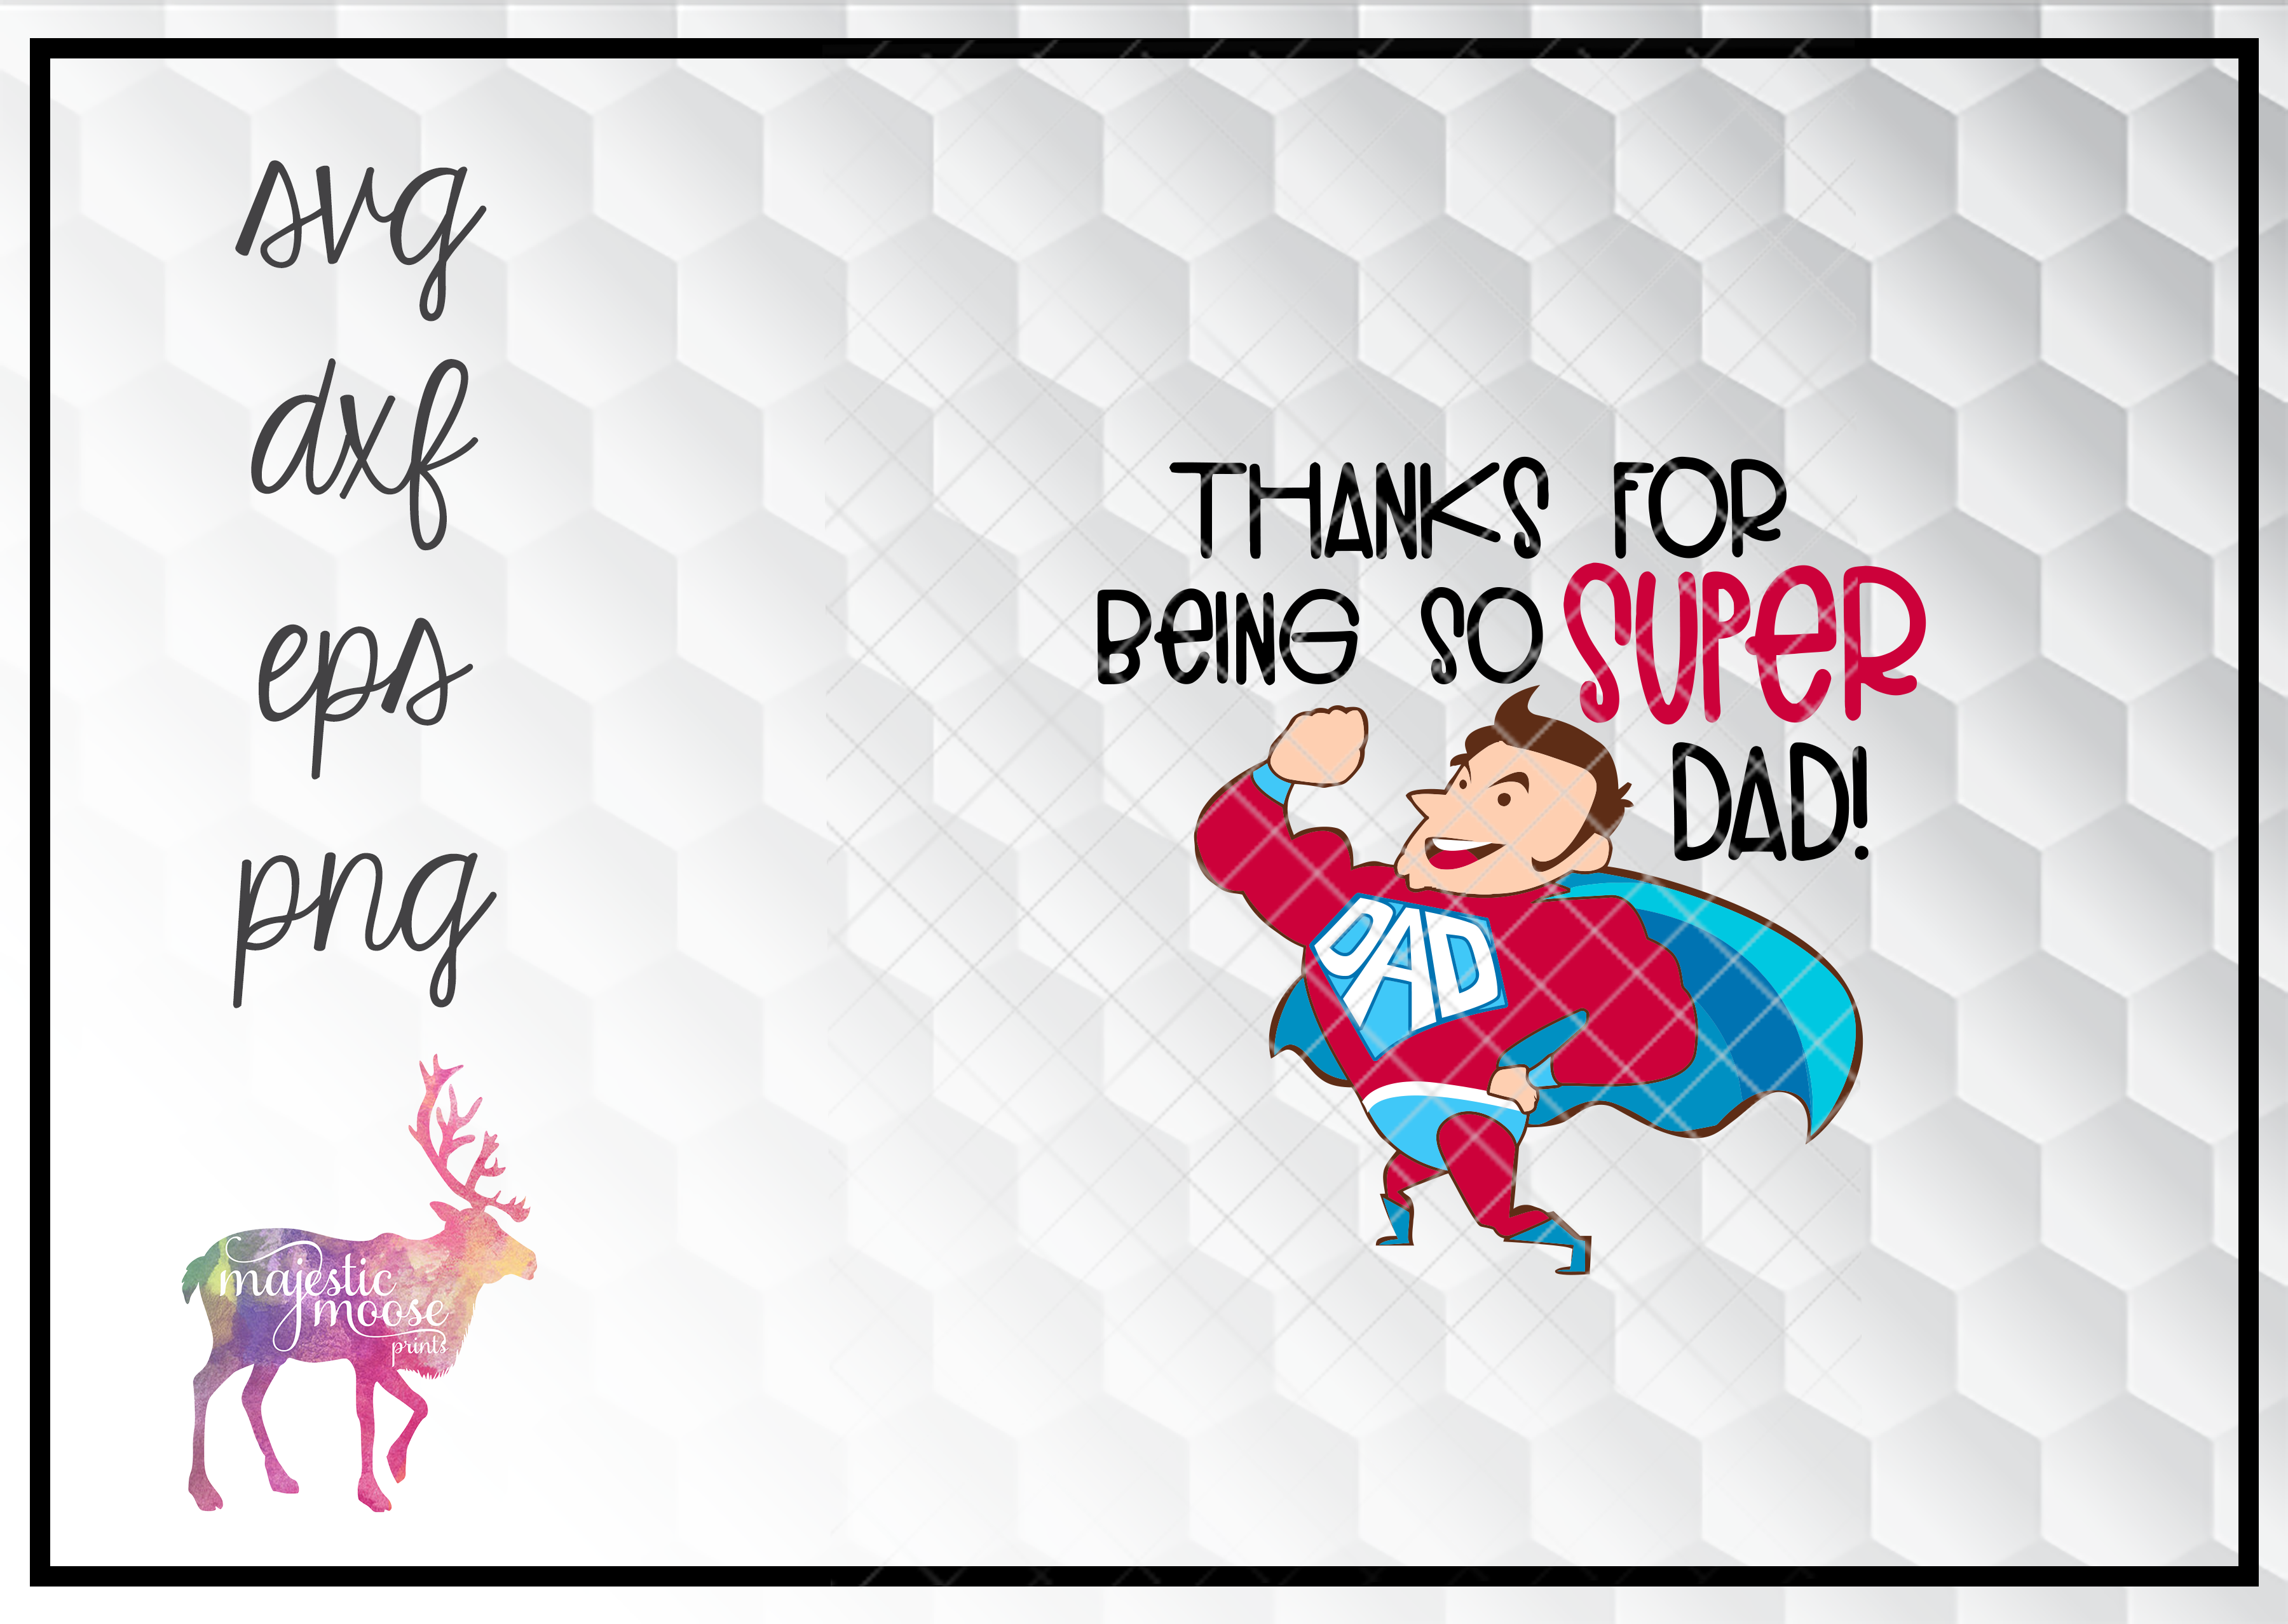 Download Free Thanks For Being A Super Dad Svg Graphic By Majesticmooseprints for Cricut Explore, Silhouette and other cutting machines.